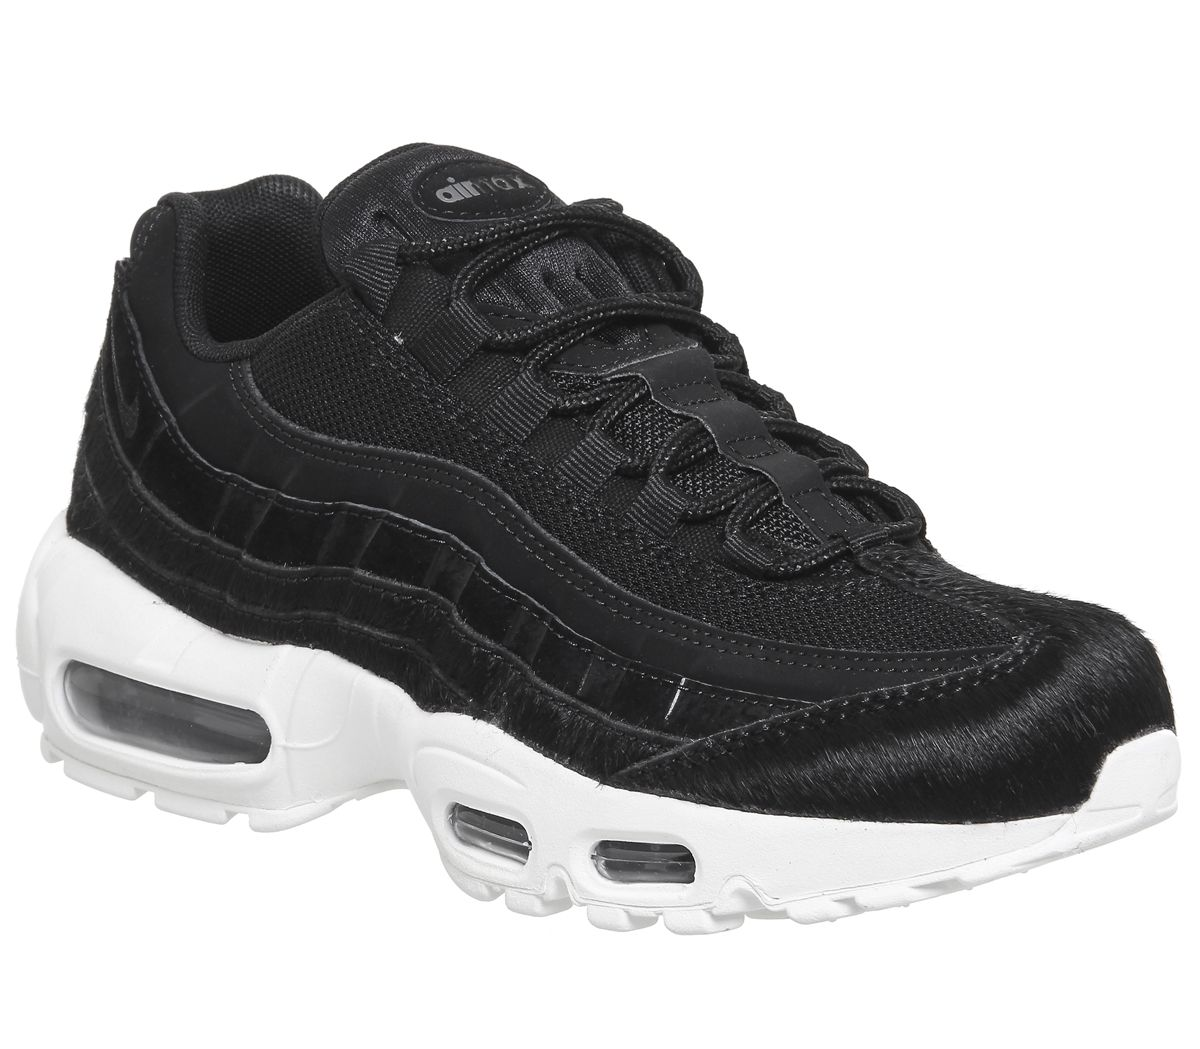 huge discount 40052 c4d3a Nike Air Max 95 Trainers Black White Pony Fur - Hers trainers